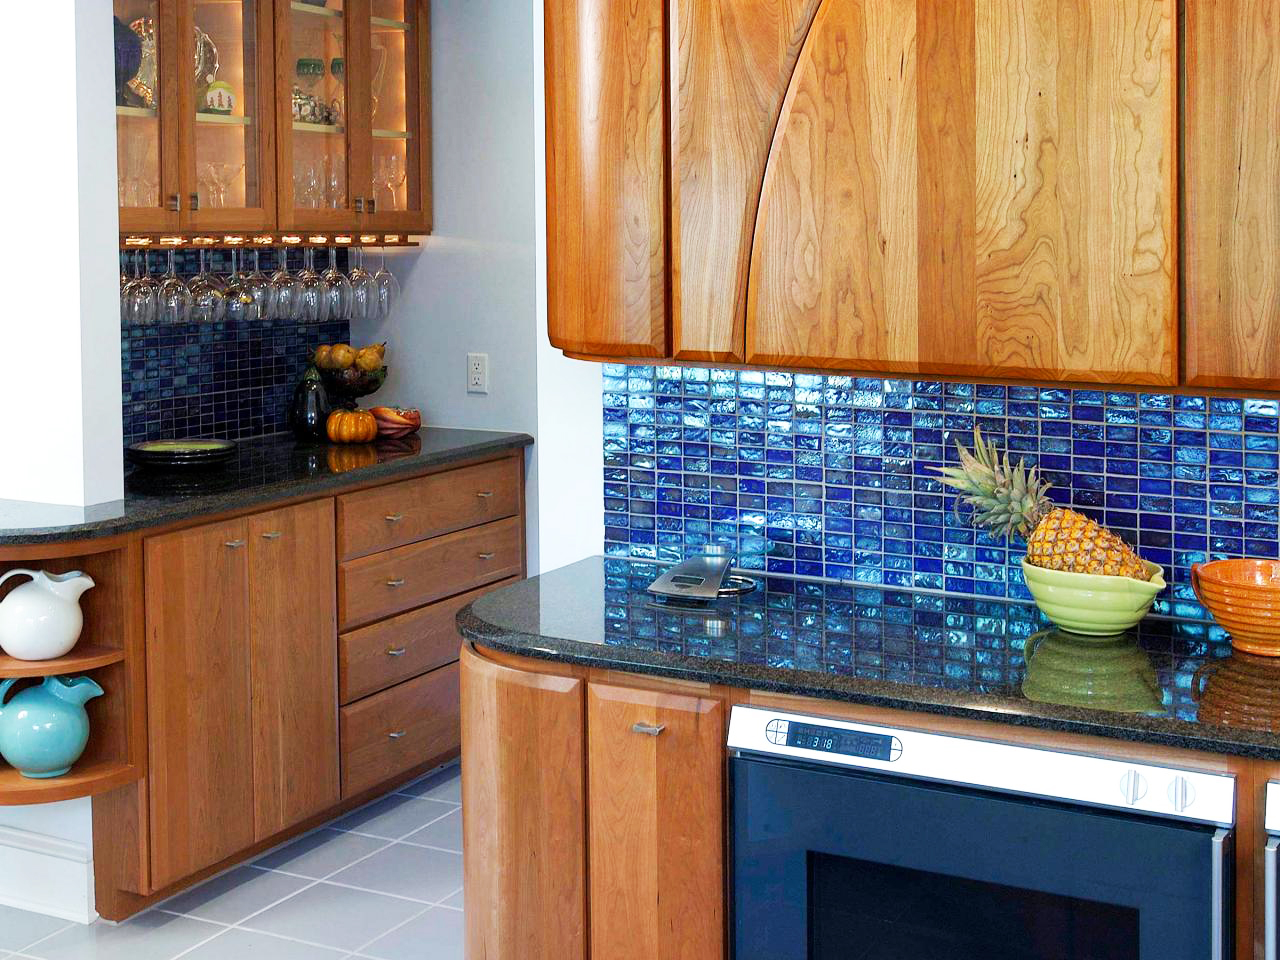 cost-to-remodel-kitchen-with-blue-backsplash-for-small-kitchen-remodel-in-average-cost-remodeling-kitchen-and-maple-kitchen-cabinets